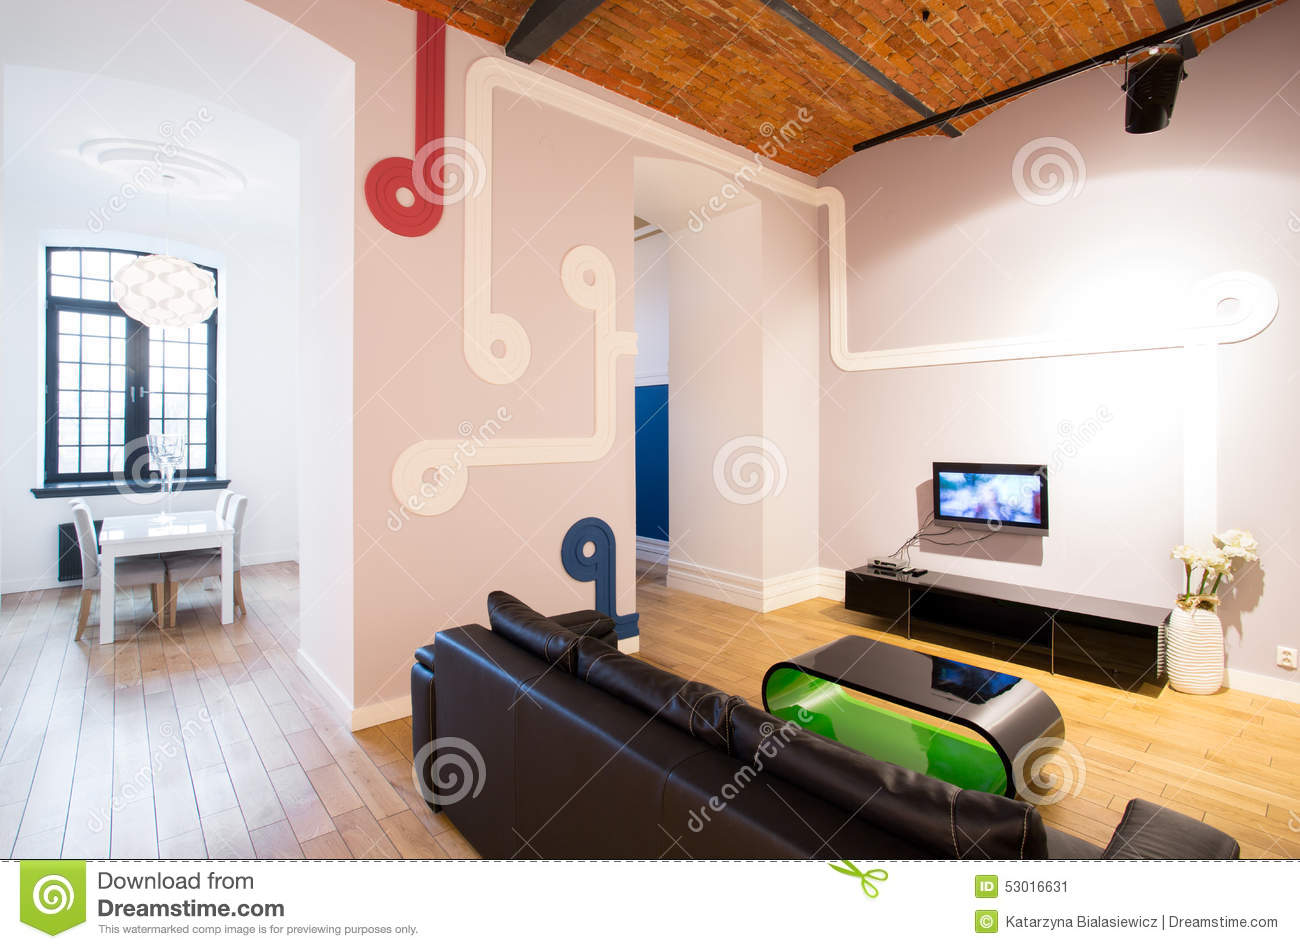 Interesting Decoration On The Wall Stock Photo Image